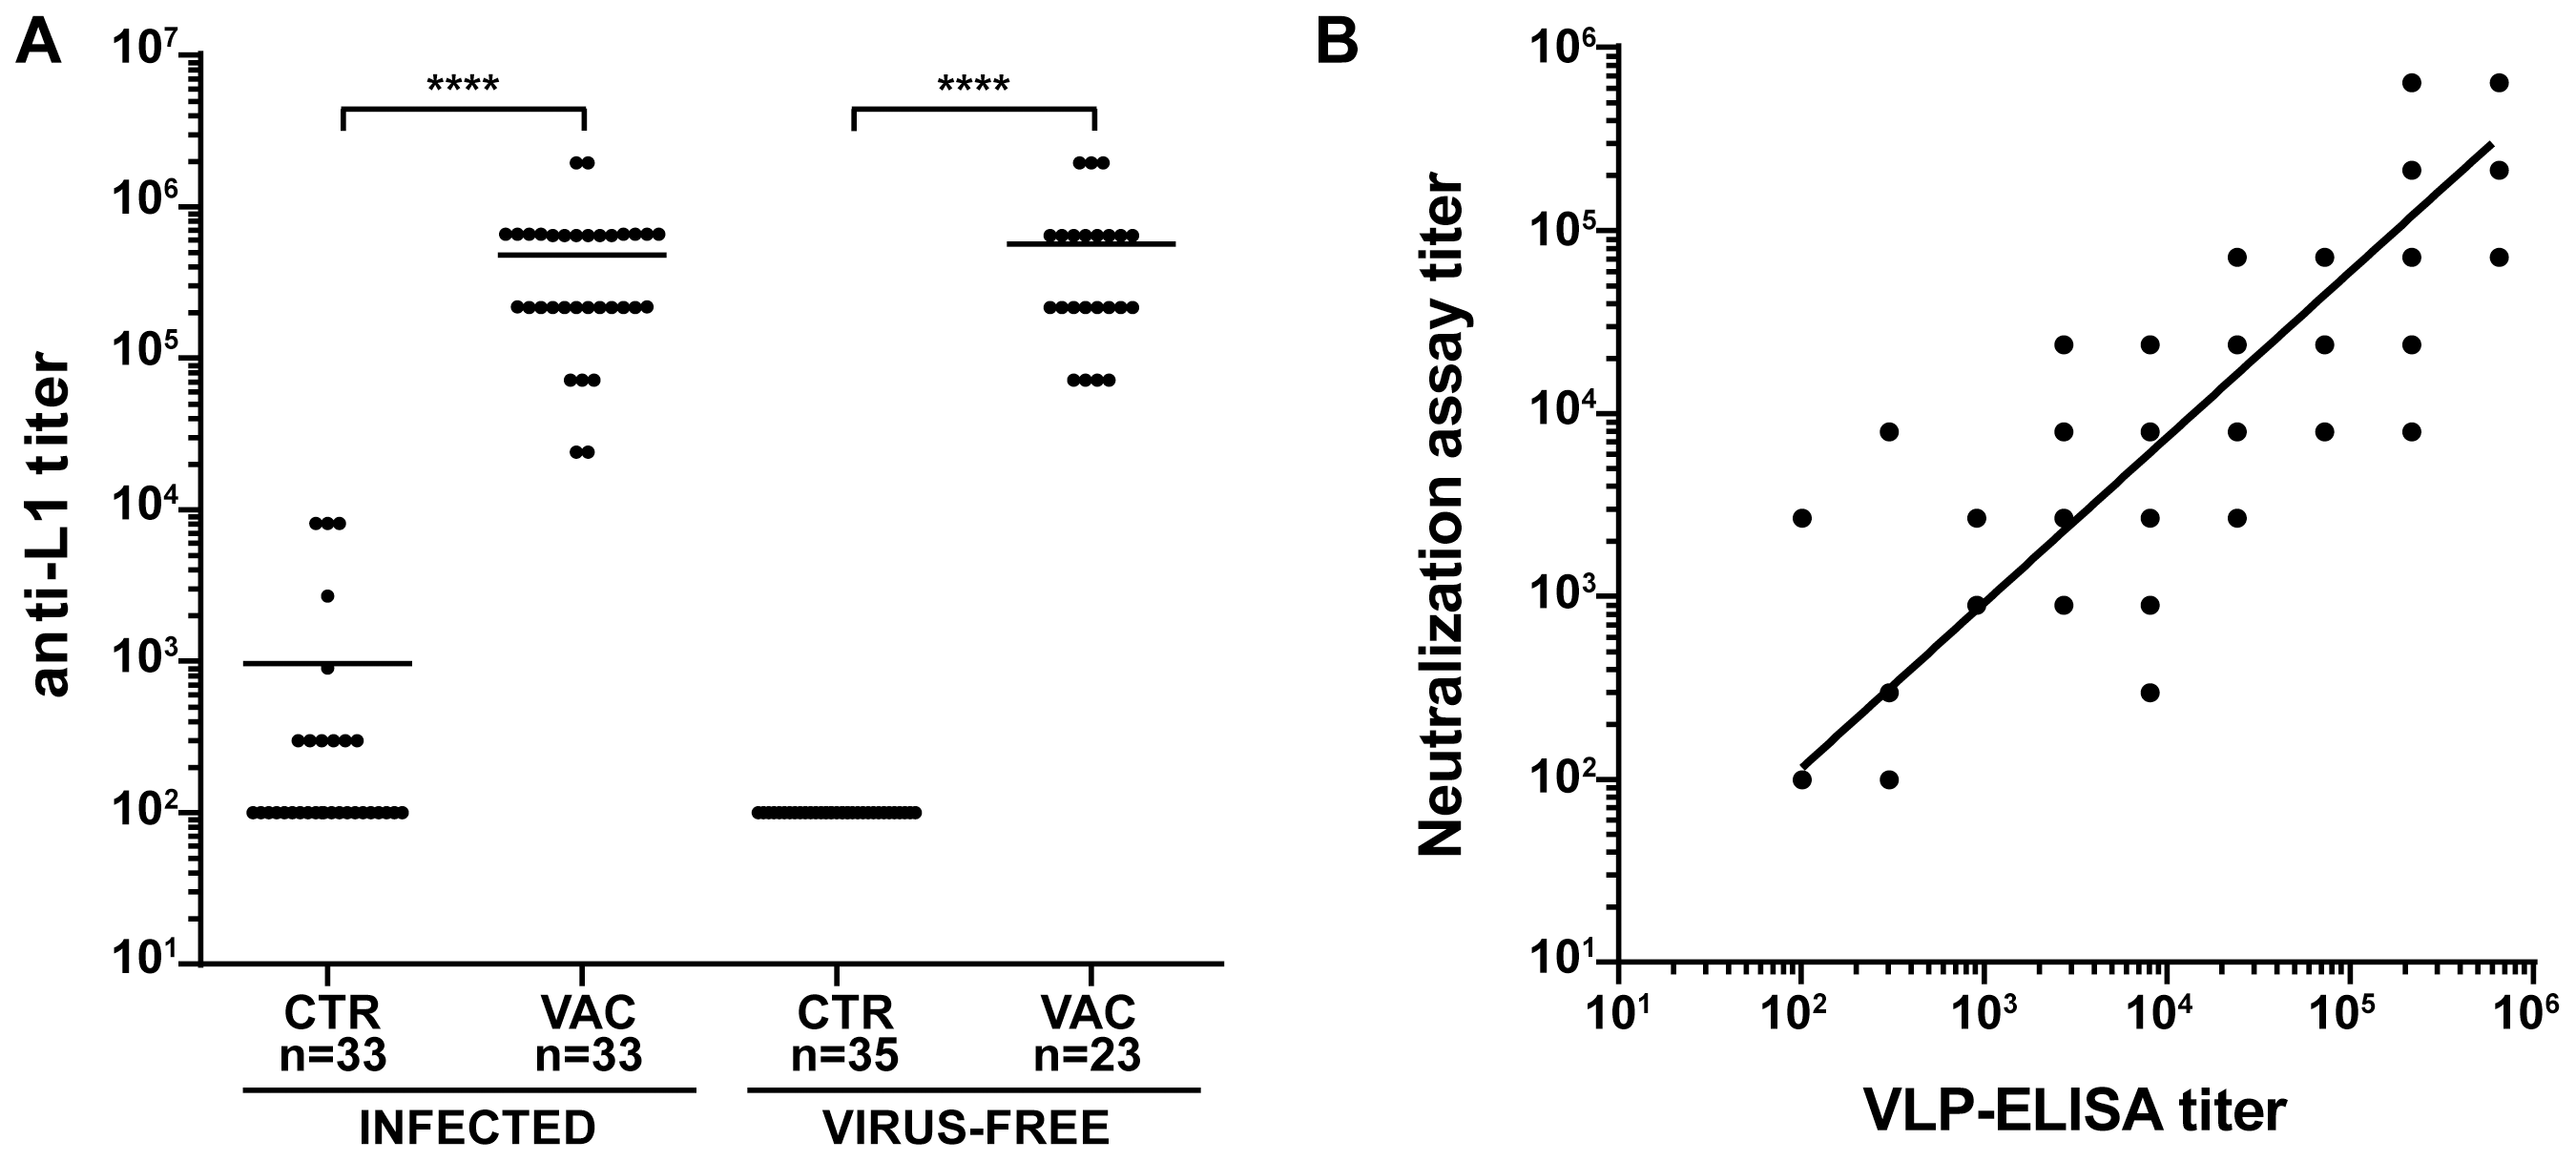 Humoral immune response to VLP vaccination.